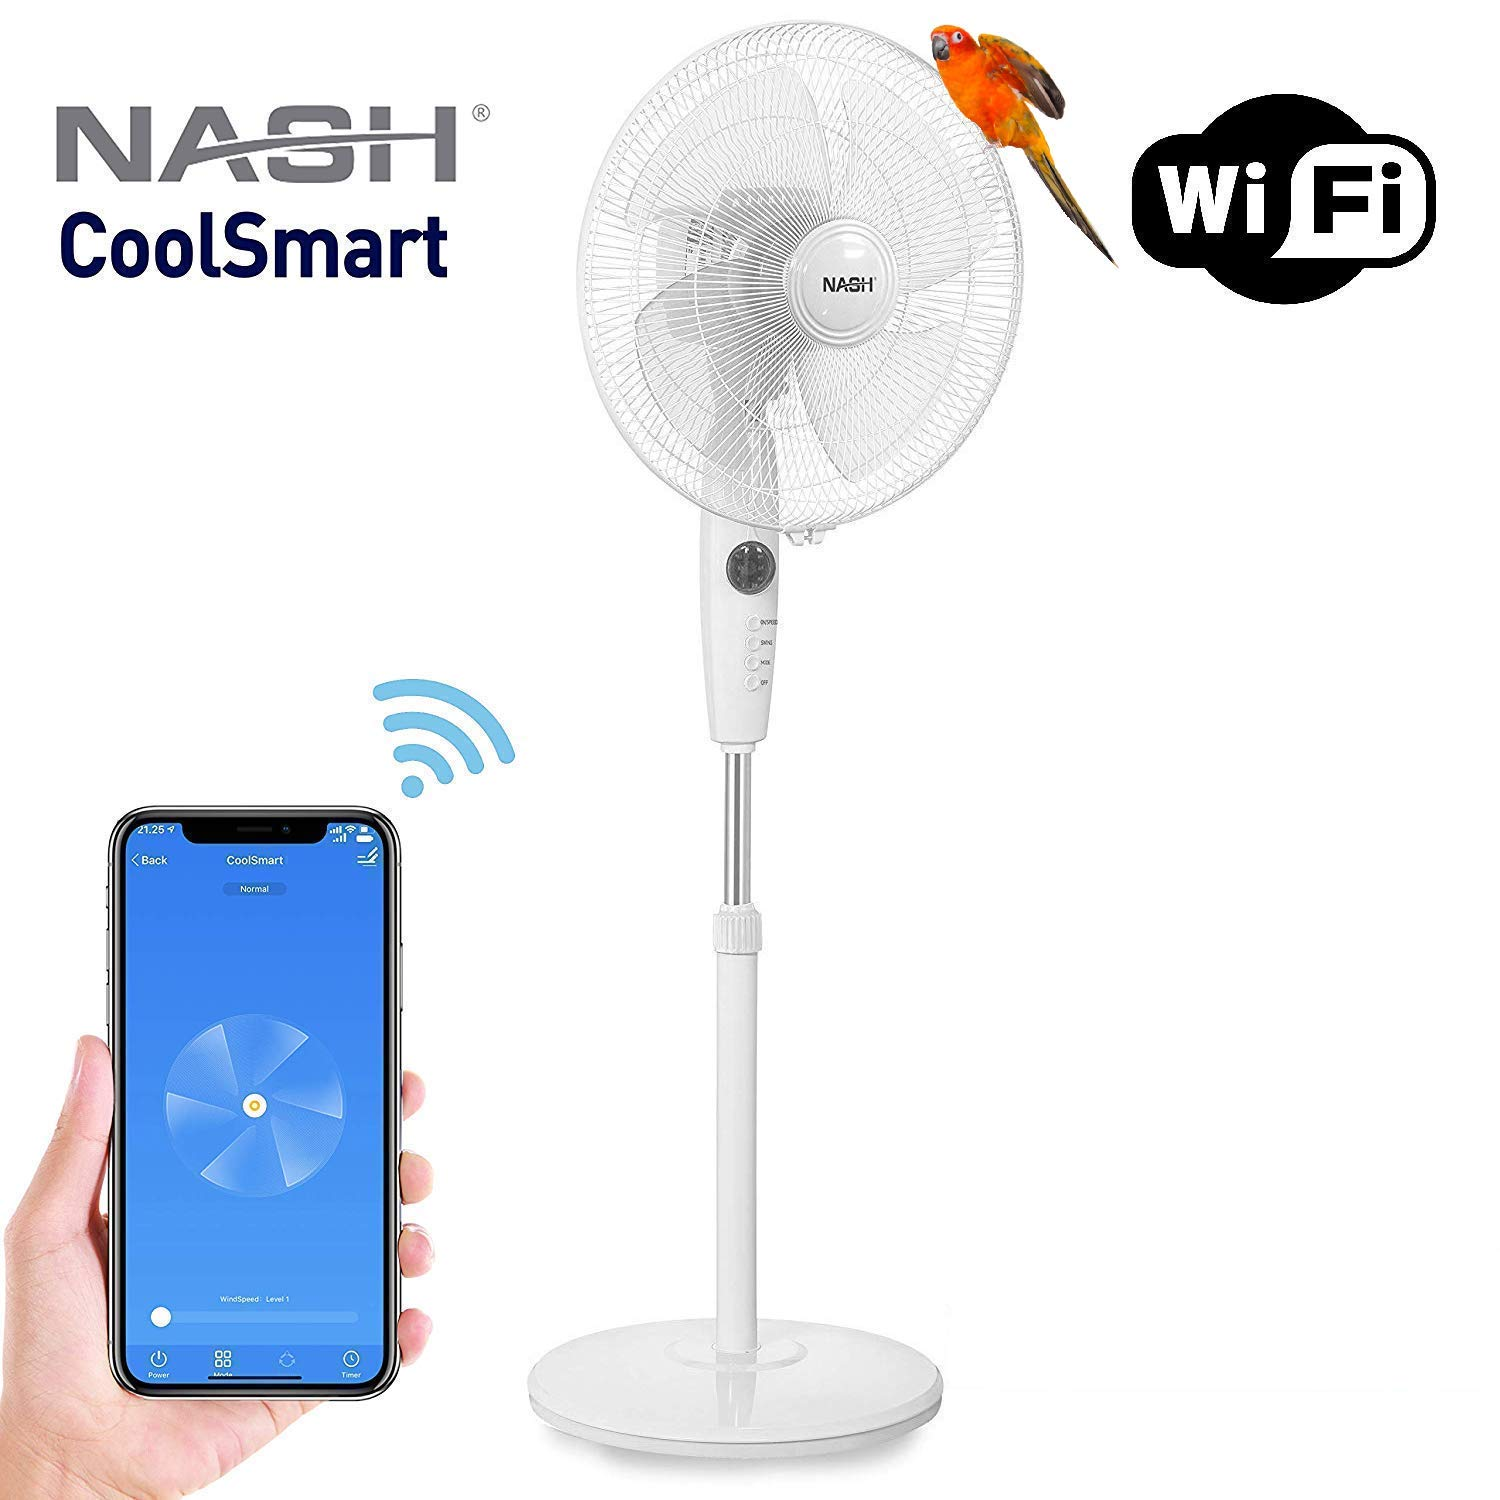 Smart WiFi Oscillating Pedestal Stand Fan 16-Inch, Compatible with Alexa & Google Home Voice Control, APP, Oscillation, Automation, NASH PF-1 CoolSmart. by Nash